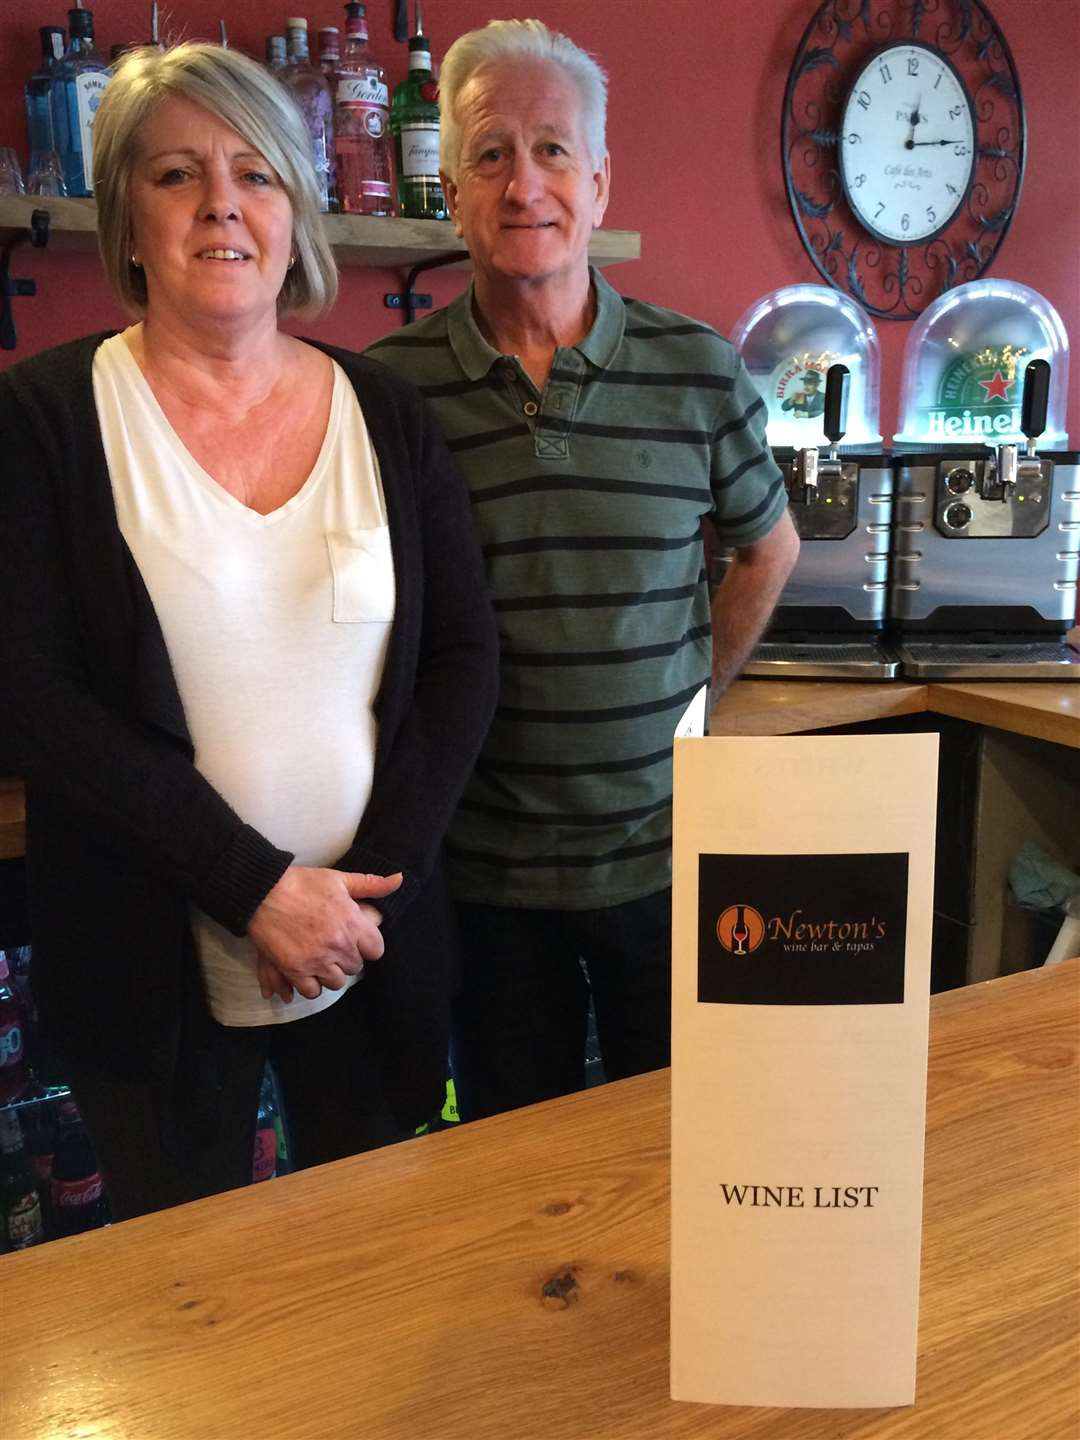 Gail and Keith Newton of Newton's Wine Bar and Tapas, Bourne (6975756)